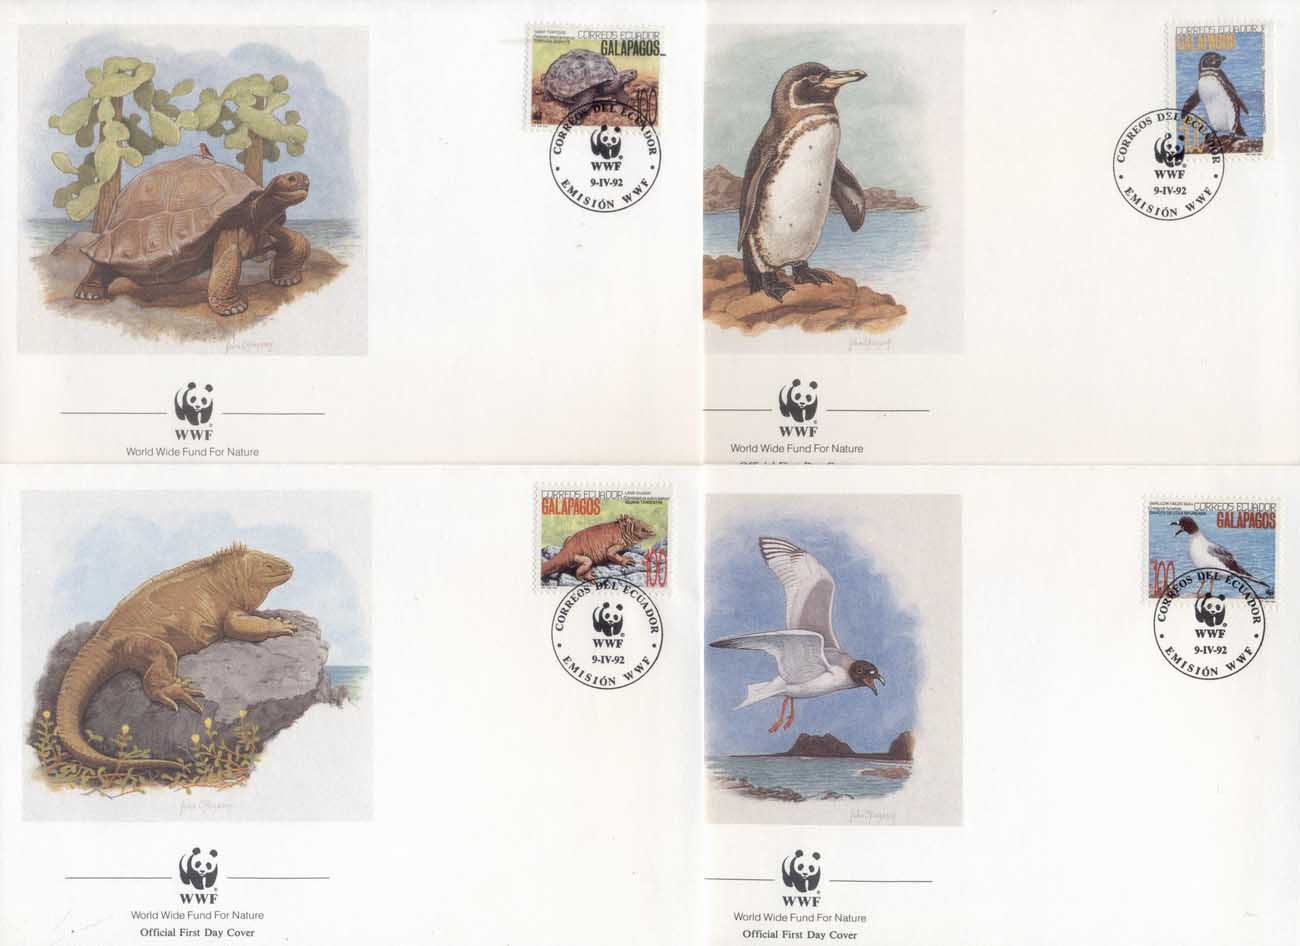 Ecuador 1992 WWF Animals of the Galapagos FDC